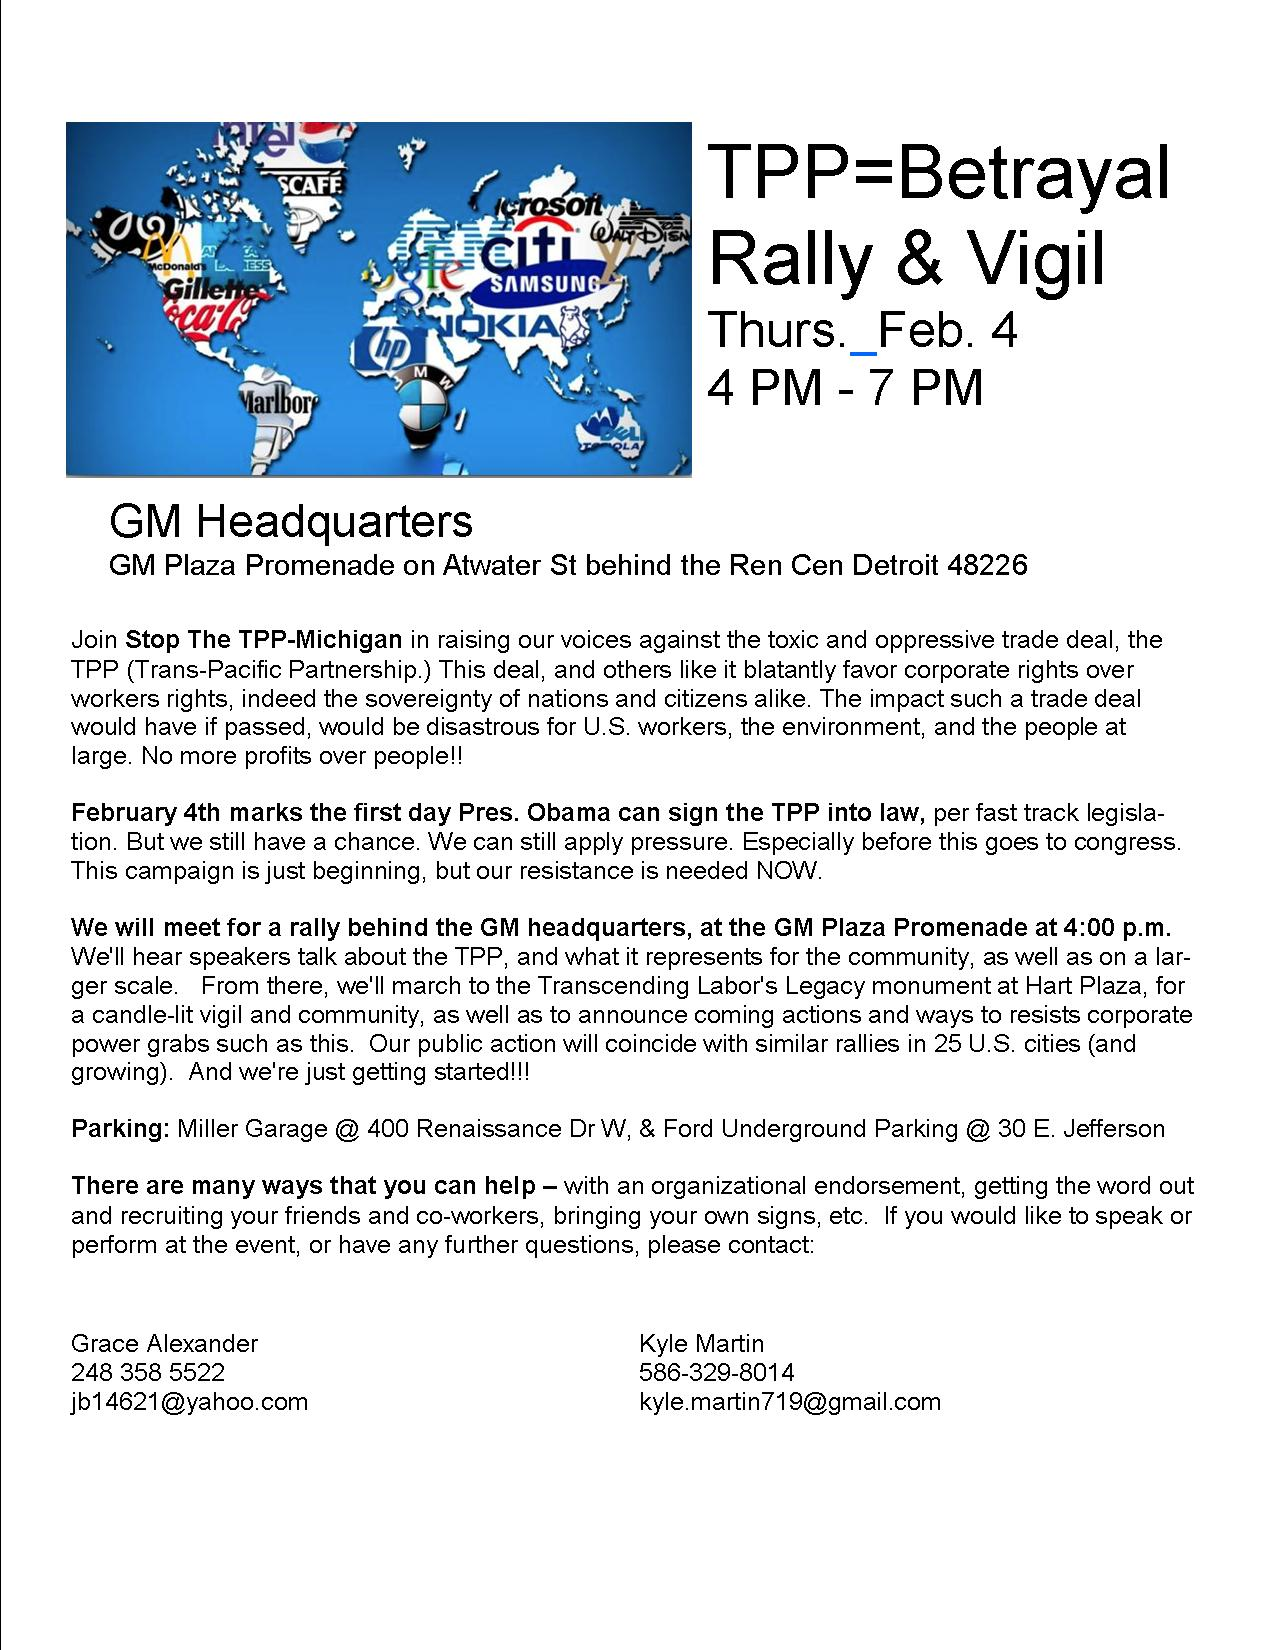 TPP Feb 4 rally & vigil -2.0